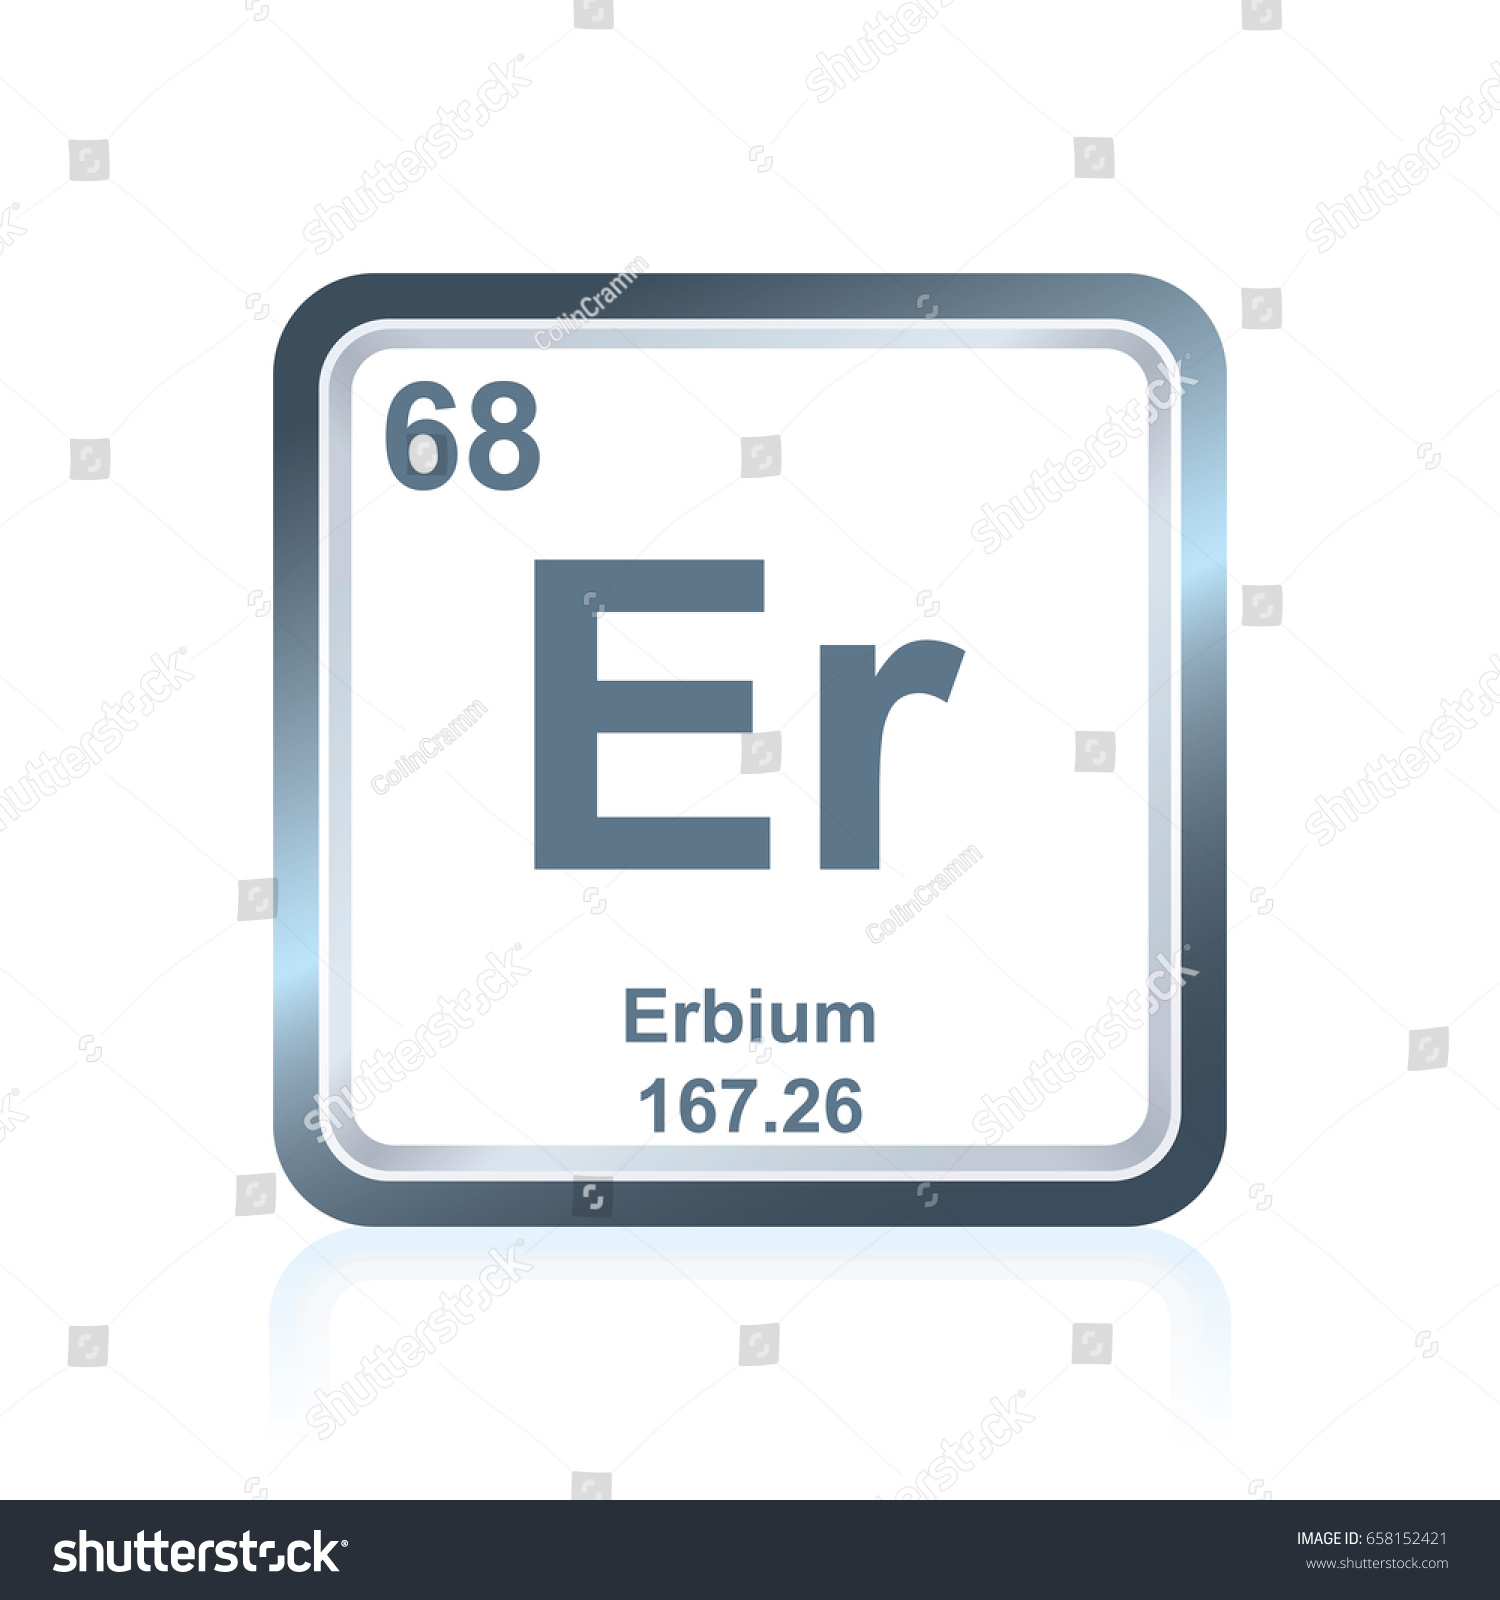 Erbium chemical element periodic table idef0 visio arrow clip art erbium chemical element periodic table africa and egypt map stock vector symbol of chemical element erbium as seen on the periodic table of the elements gamestrikefo Image collections